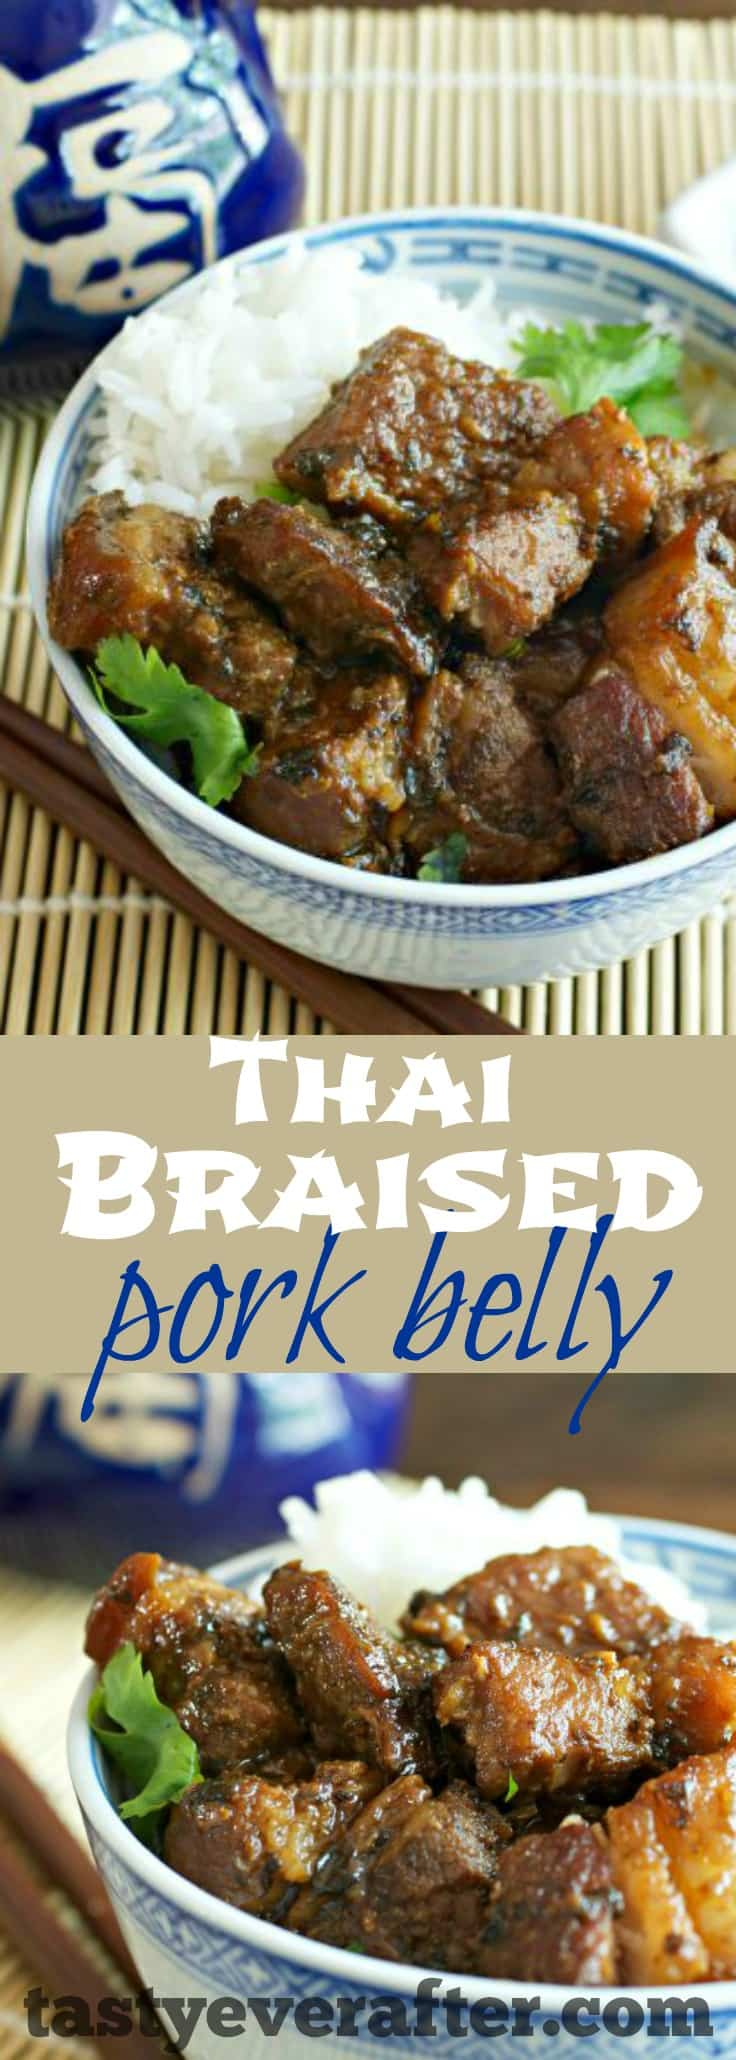 Thai Braised Pork Belly Recipe